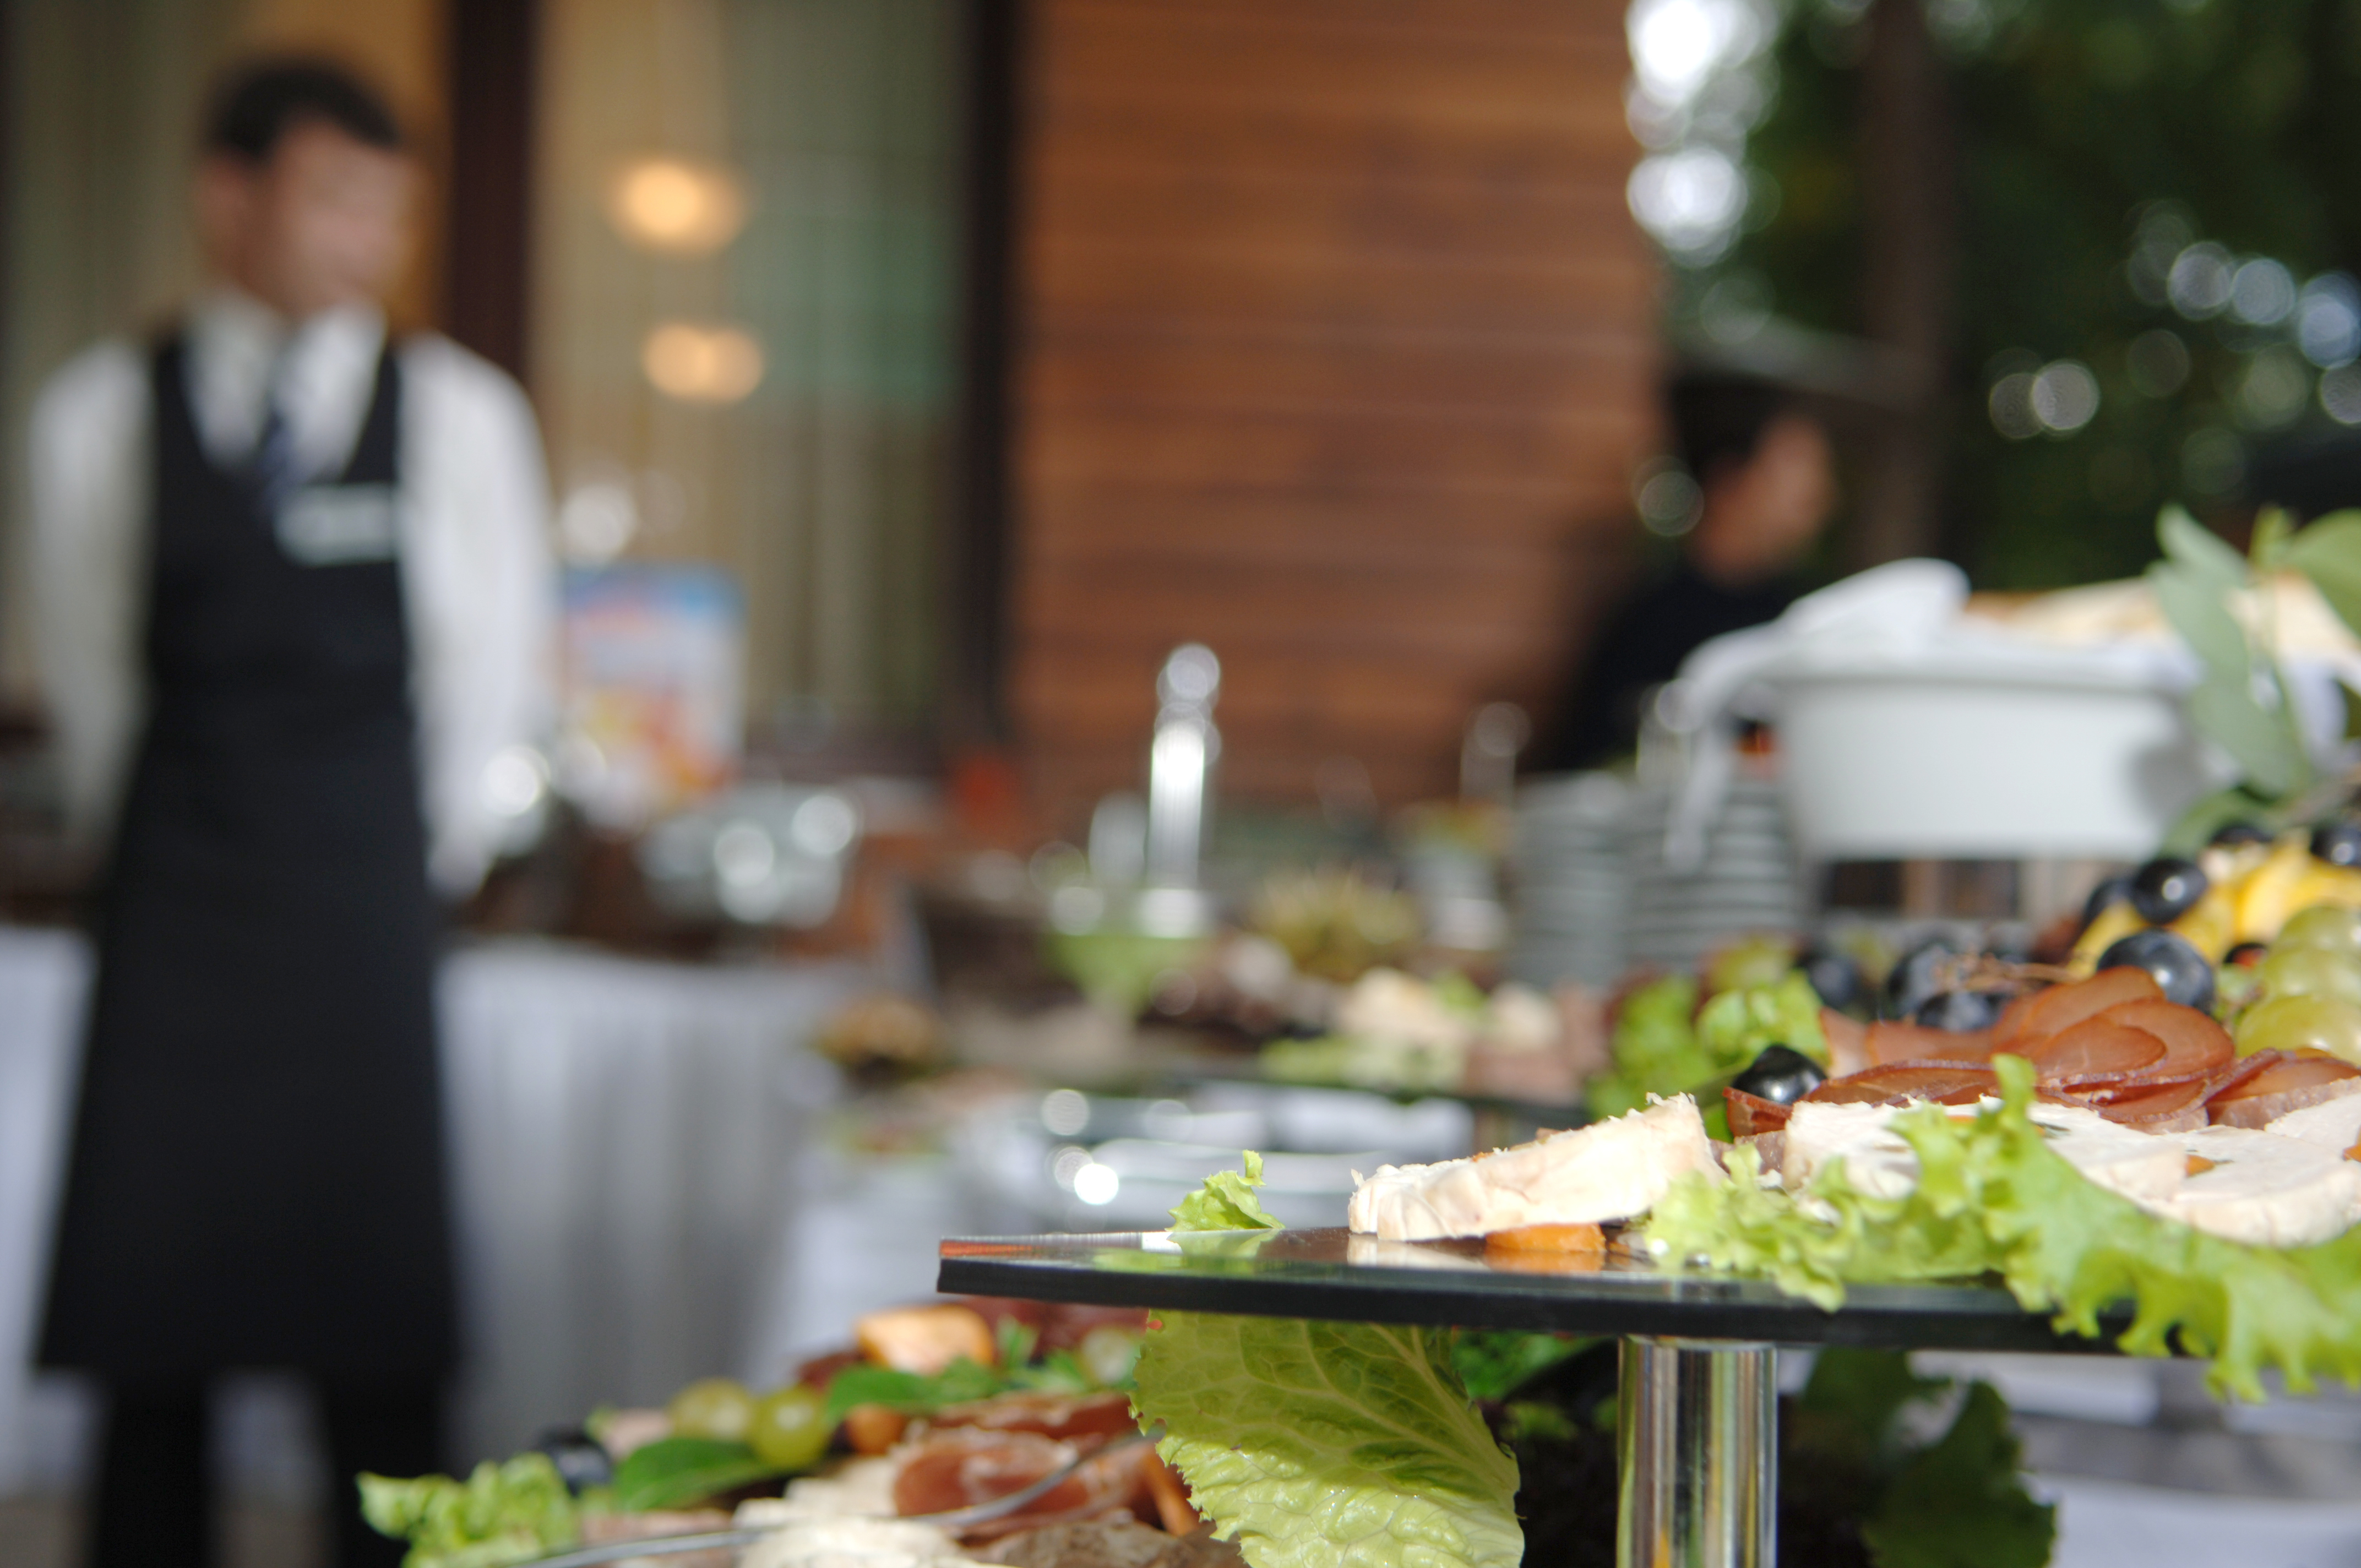 wedding catering setup with fruits and meats